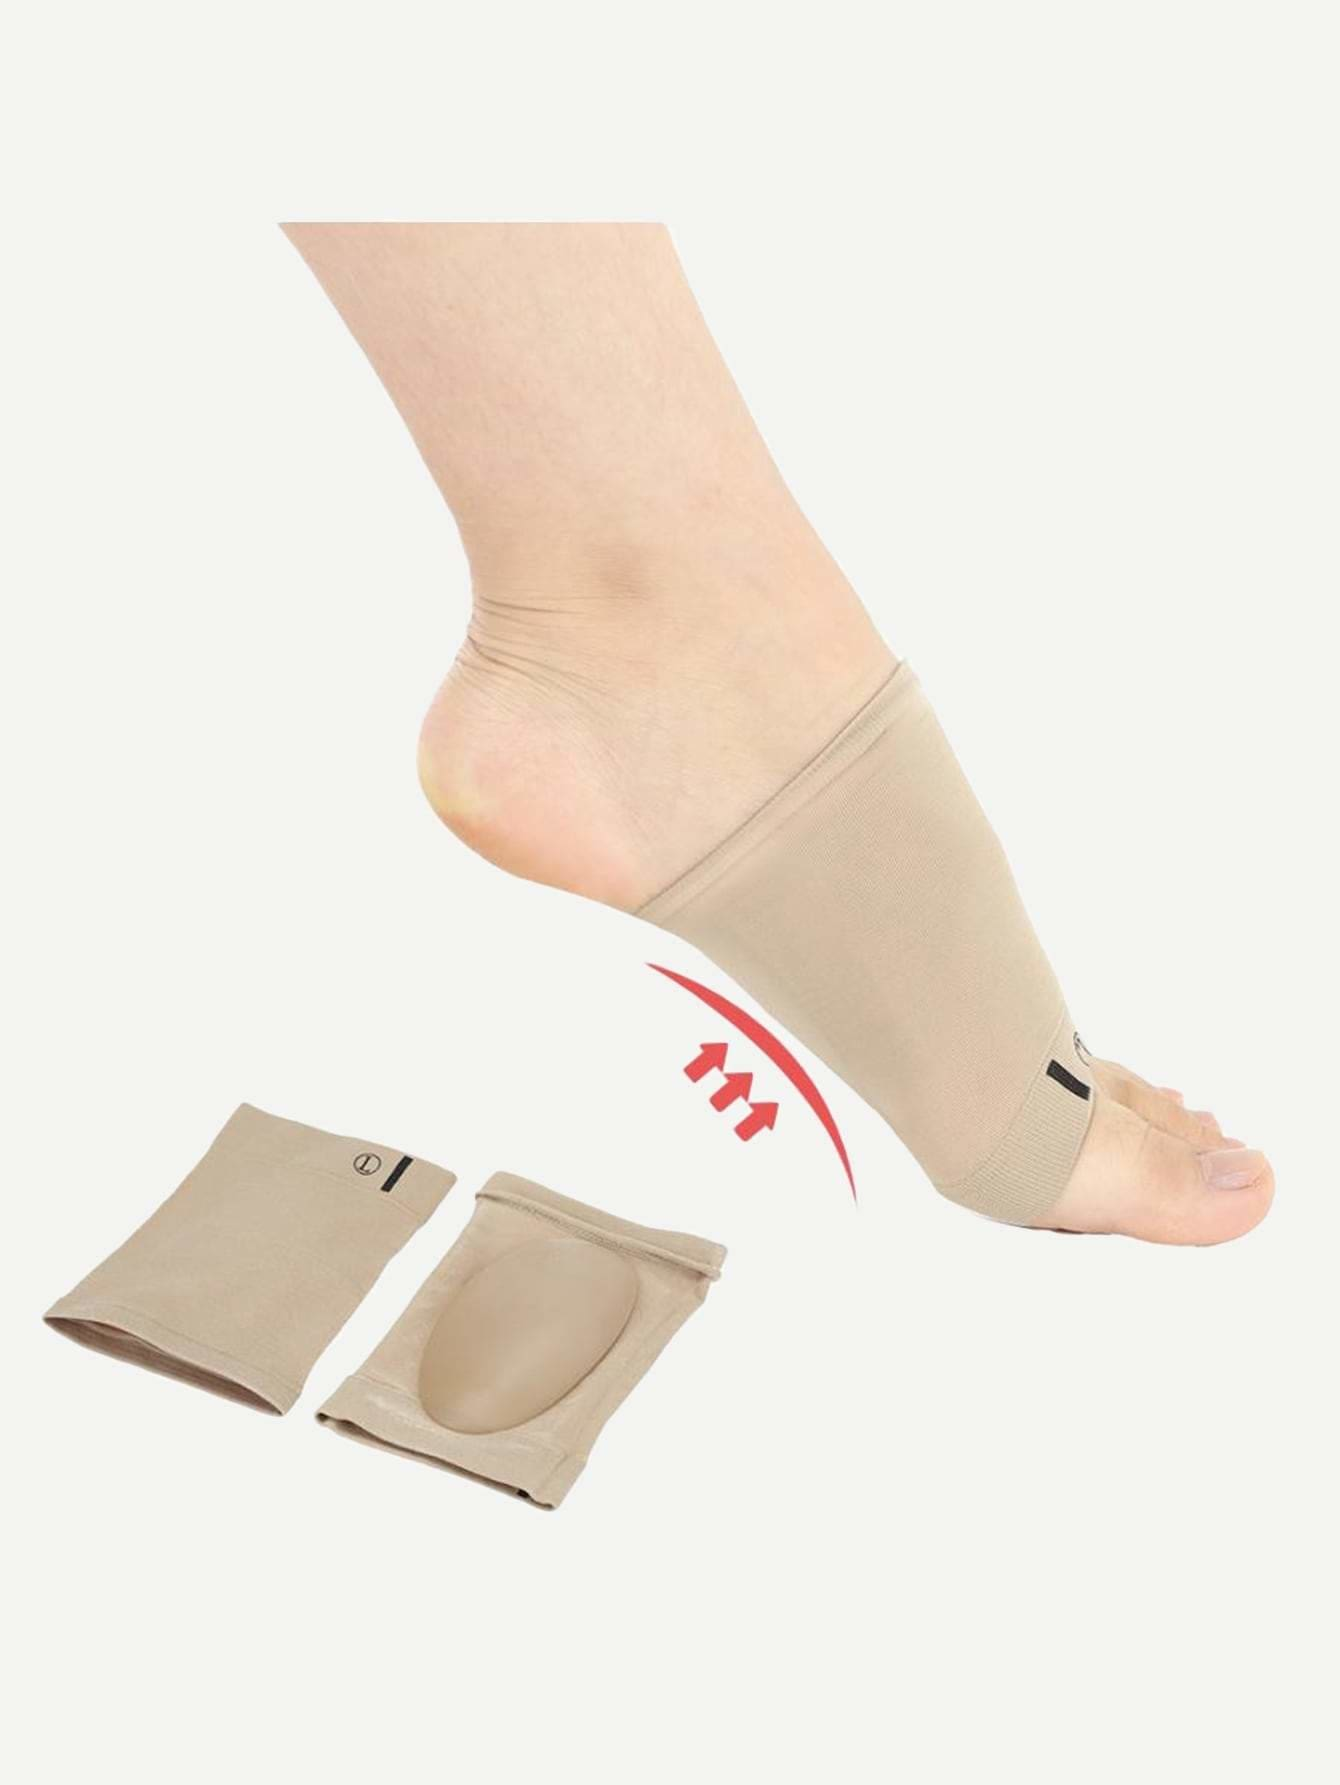 Foot Arch Support Sleeve Cushion 1Pair - Personal Care